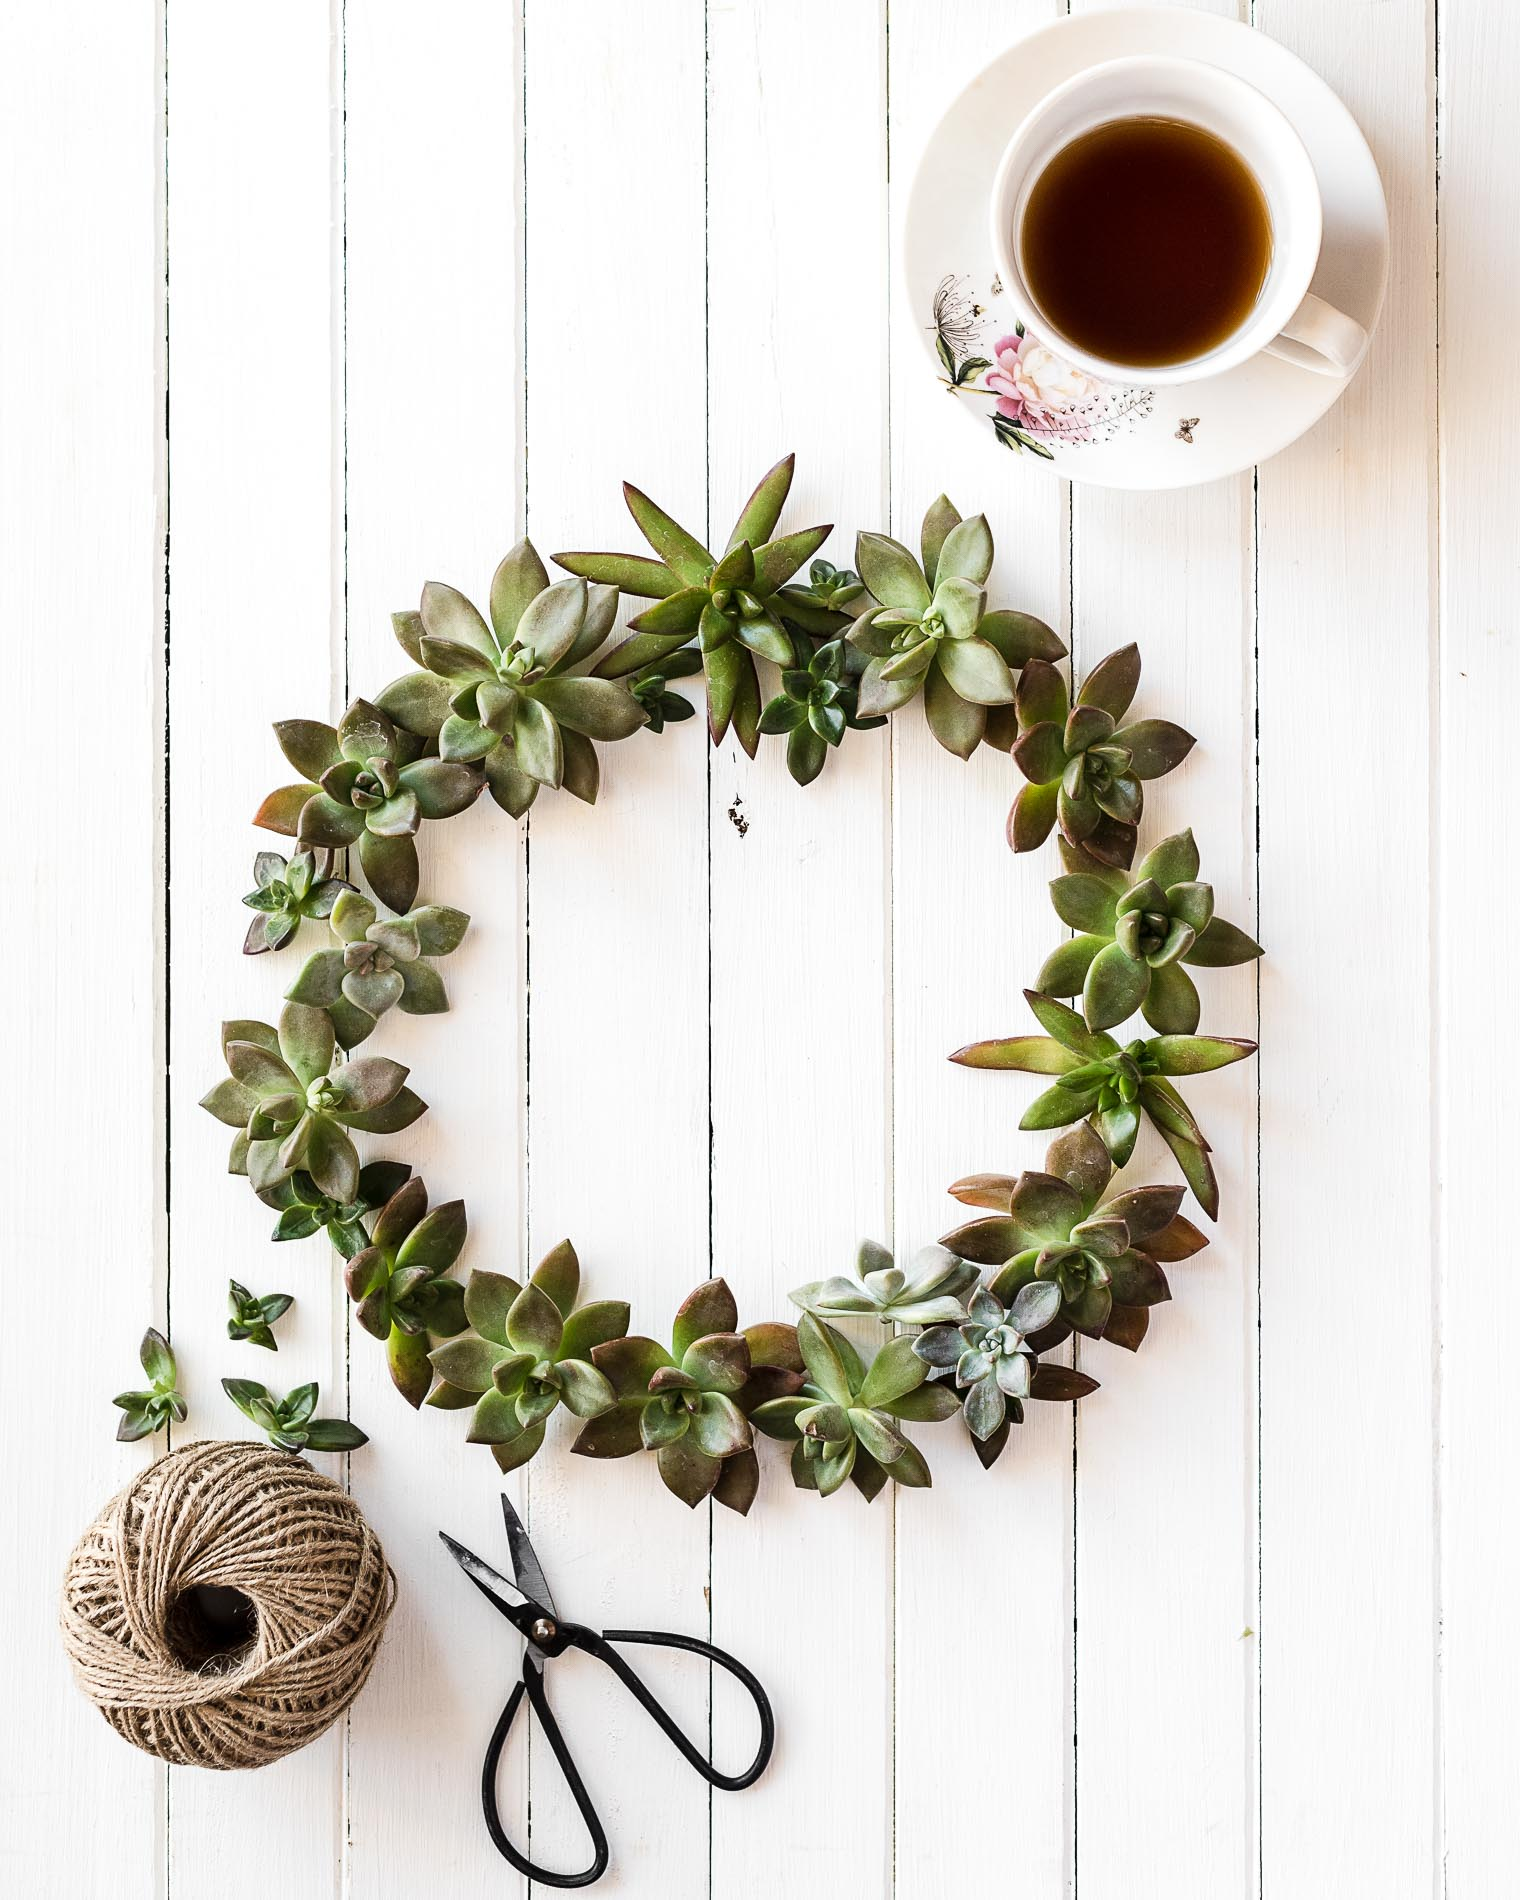 Five Things Friday, Succulent Wreath, Barb Brookbank, Keeping With the Times